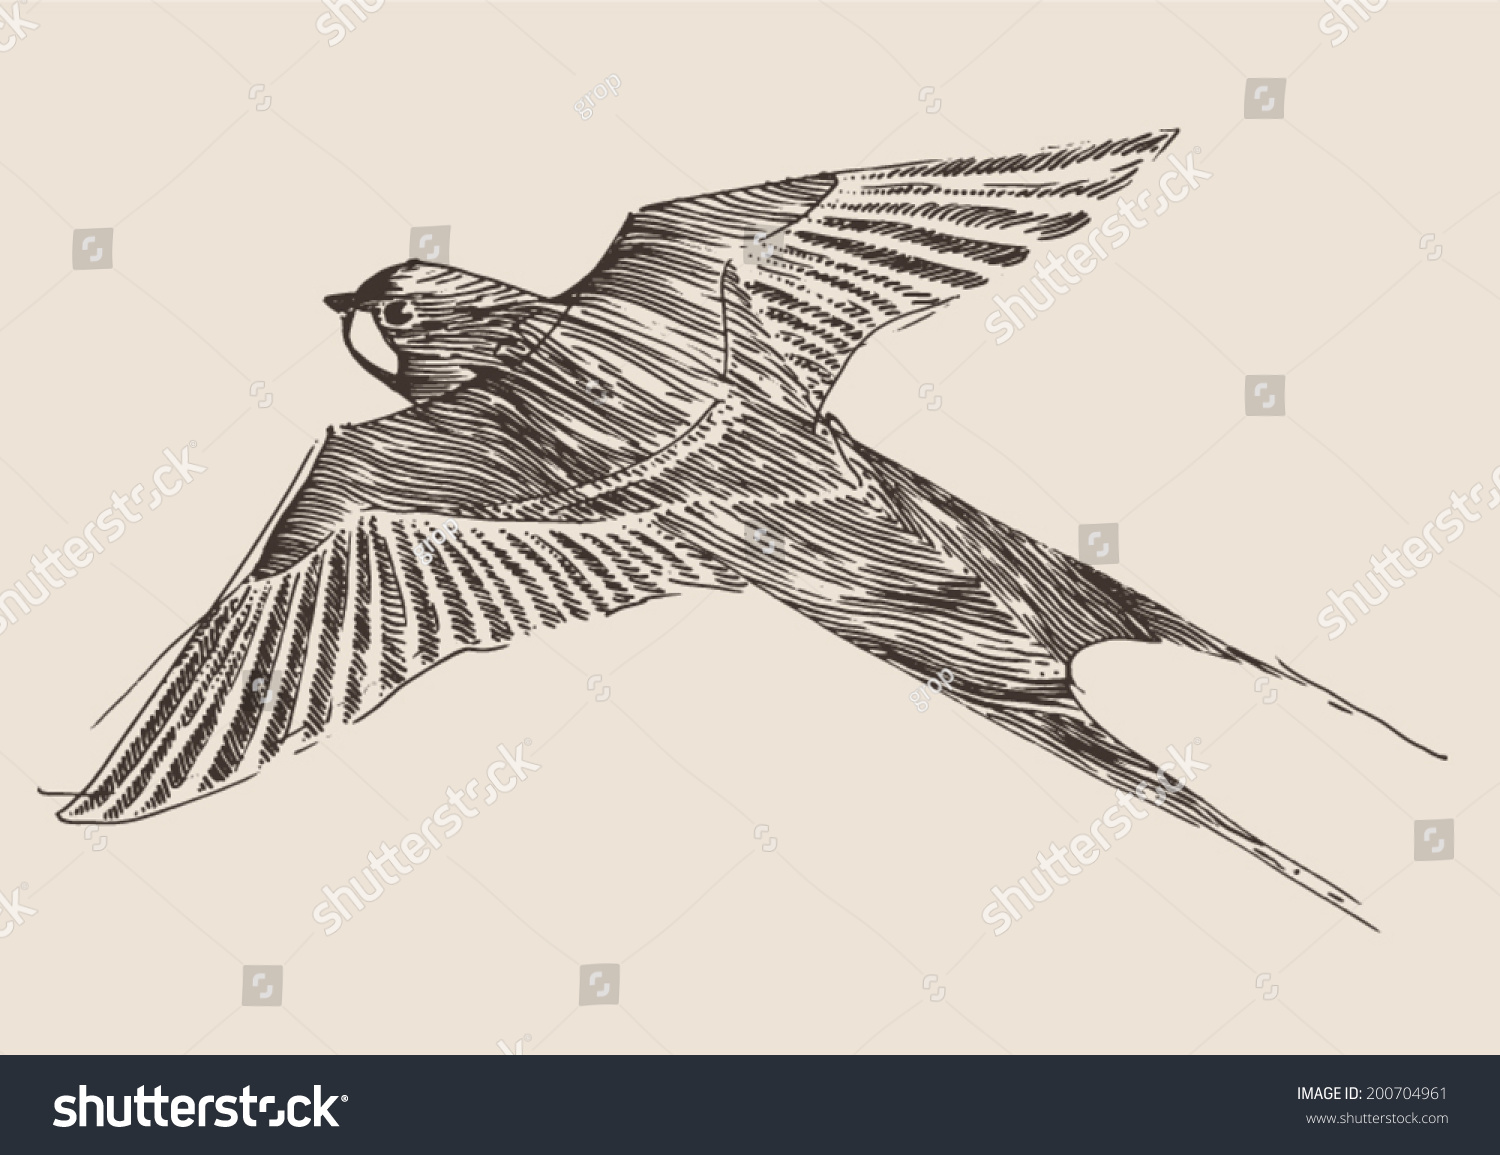 Swallows Flying Bird Vintage Illustration Engraved Stock ...